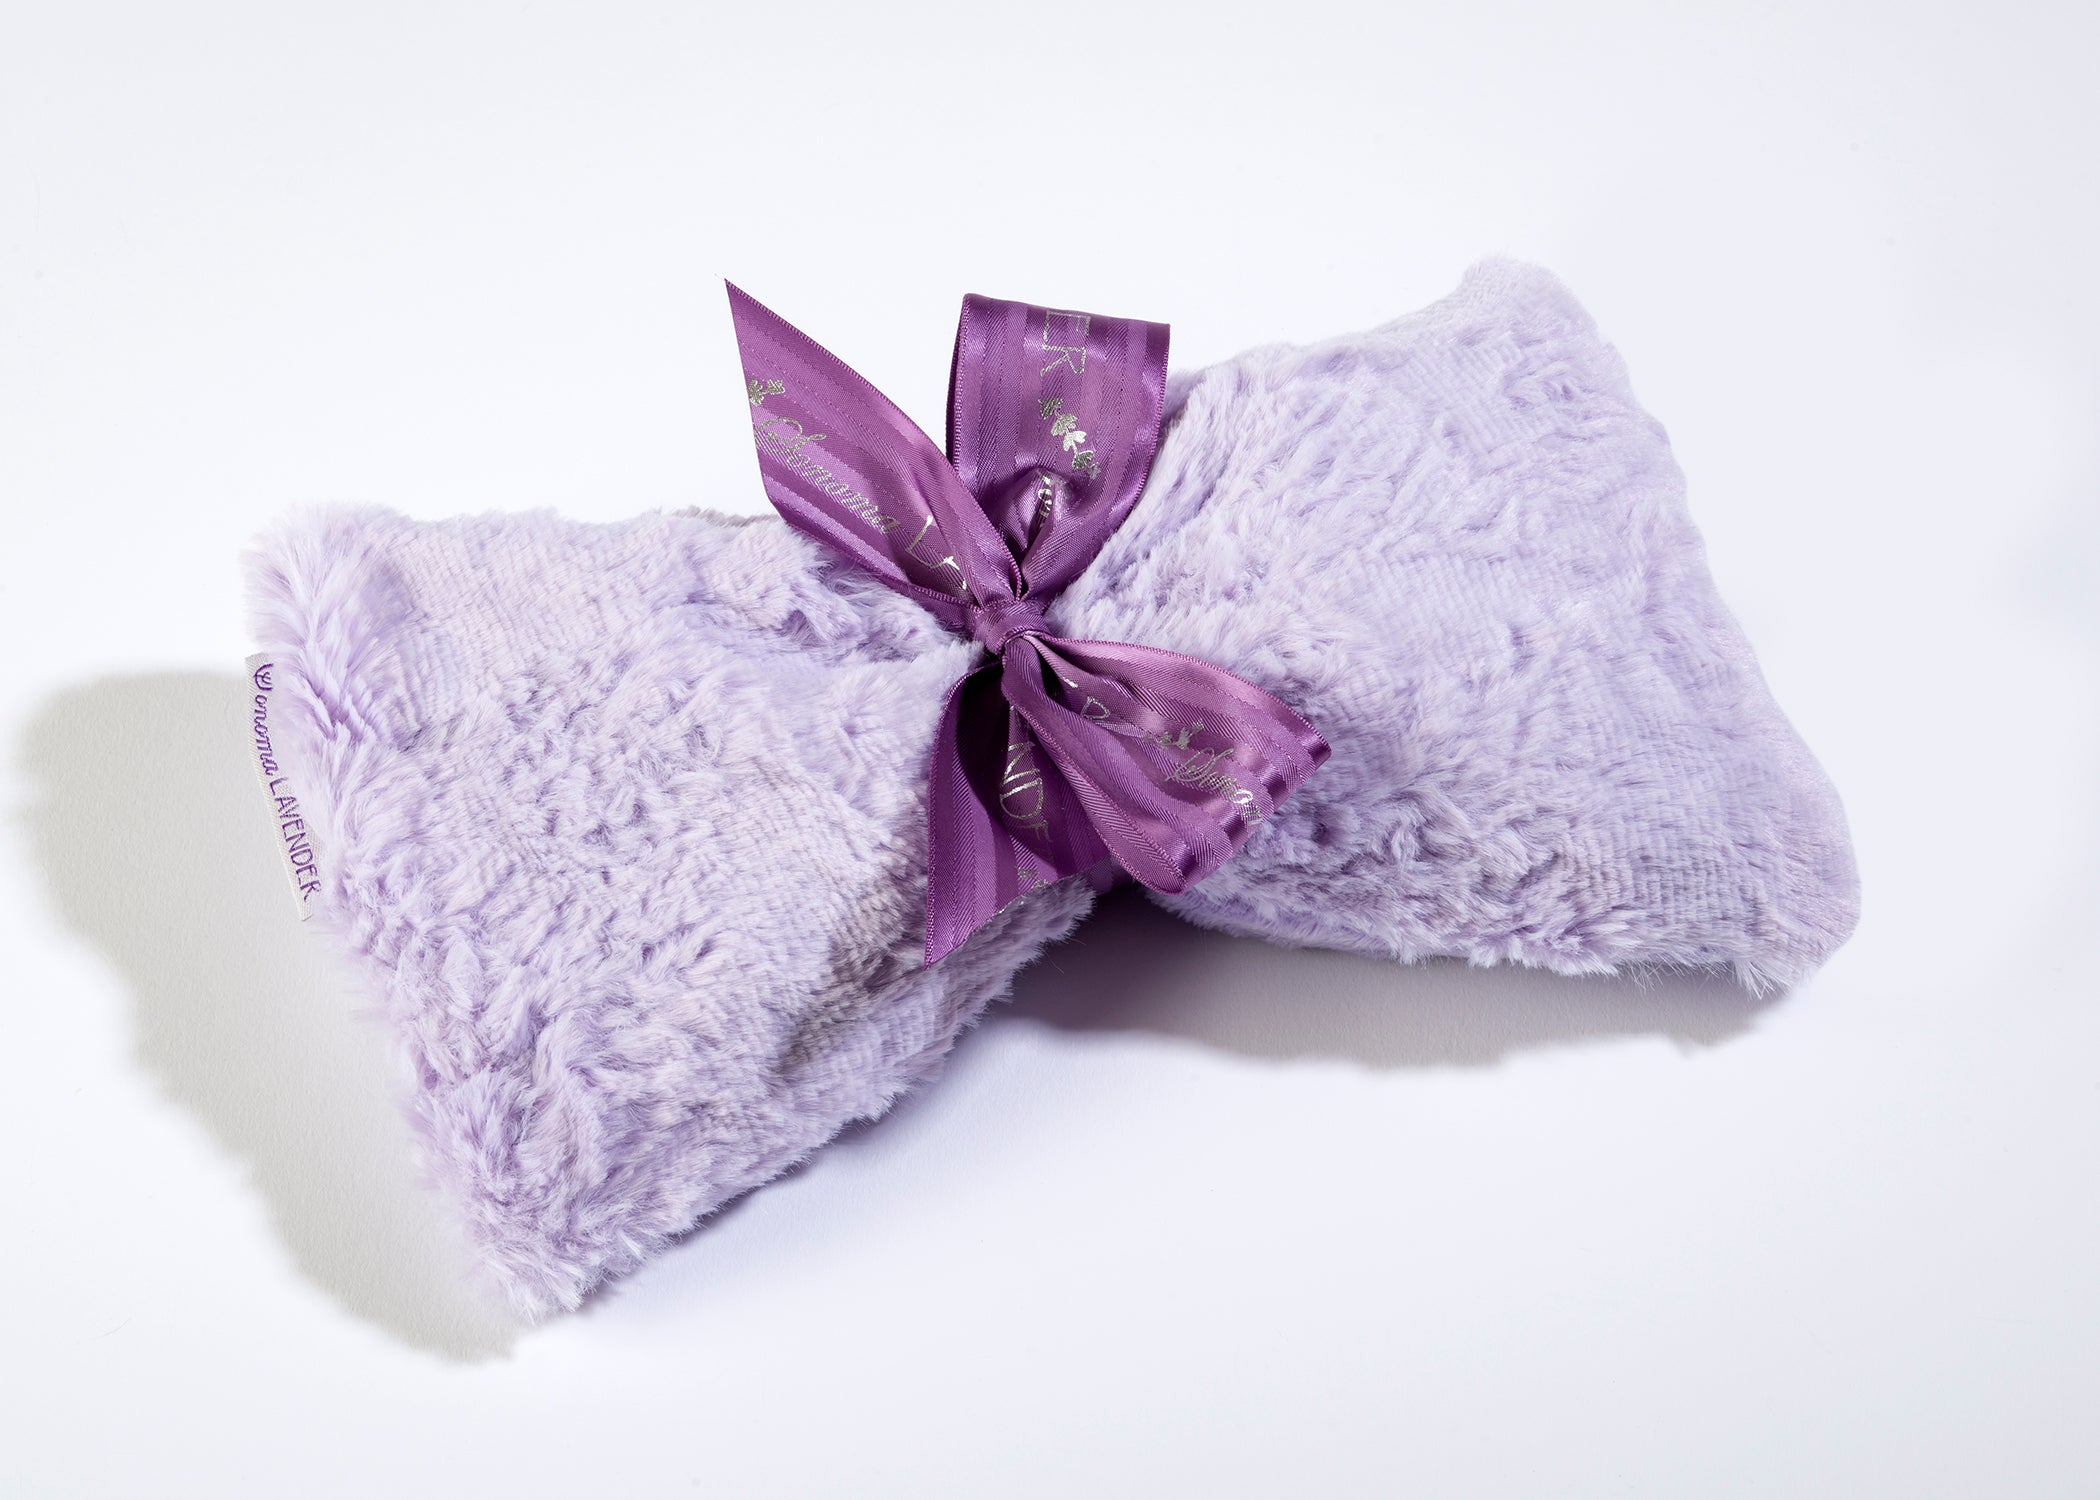 Lavender Spa Mask in Lavender Luxe